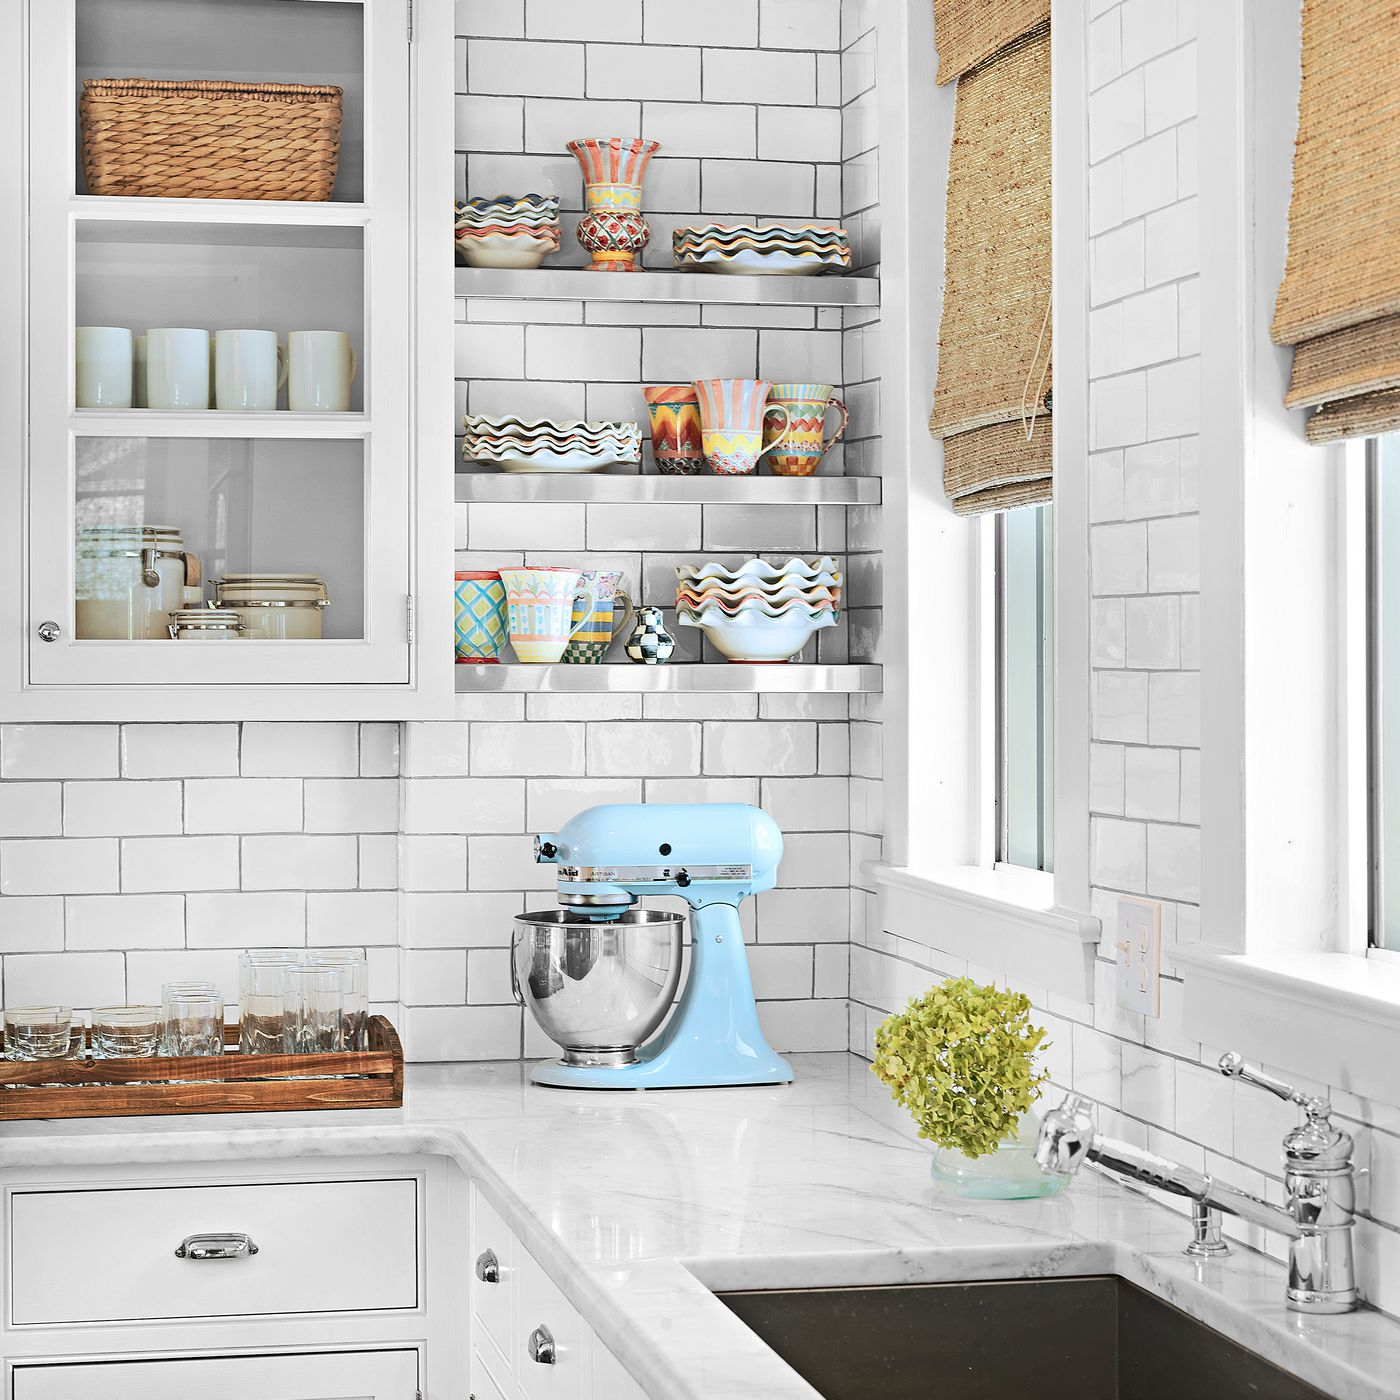 how to remove old tile grout this old